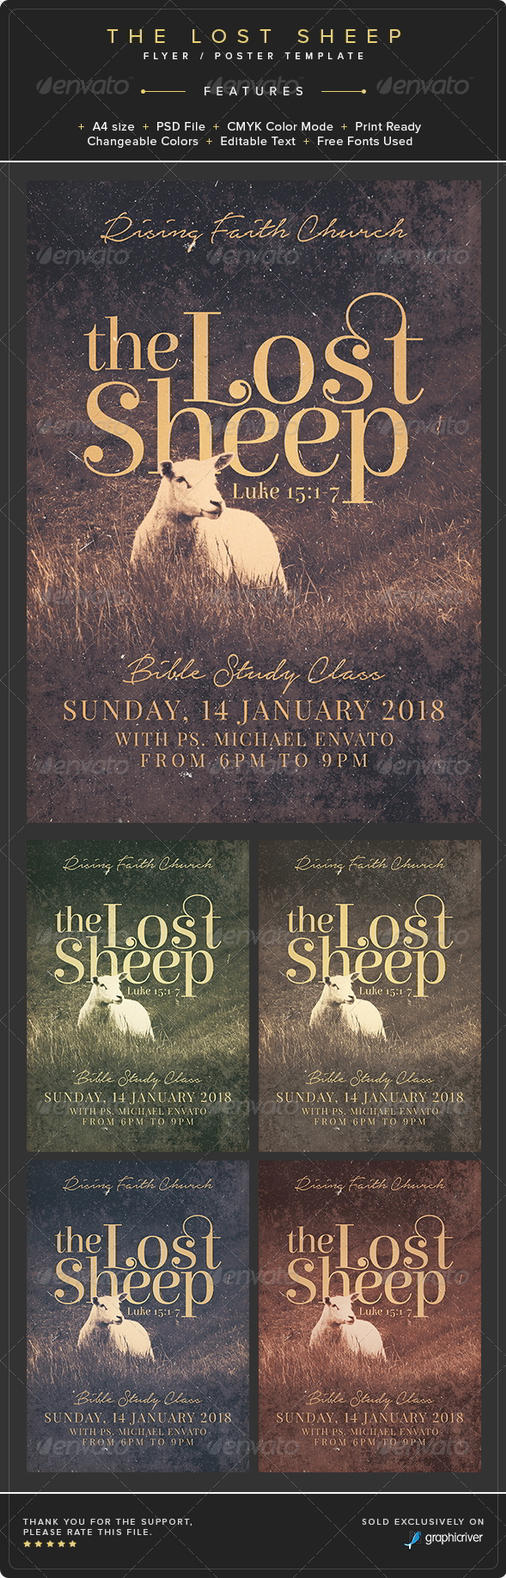 The Lost Sheep Flyer by Junaedy-Ponda